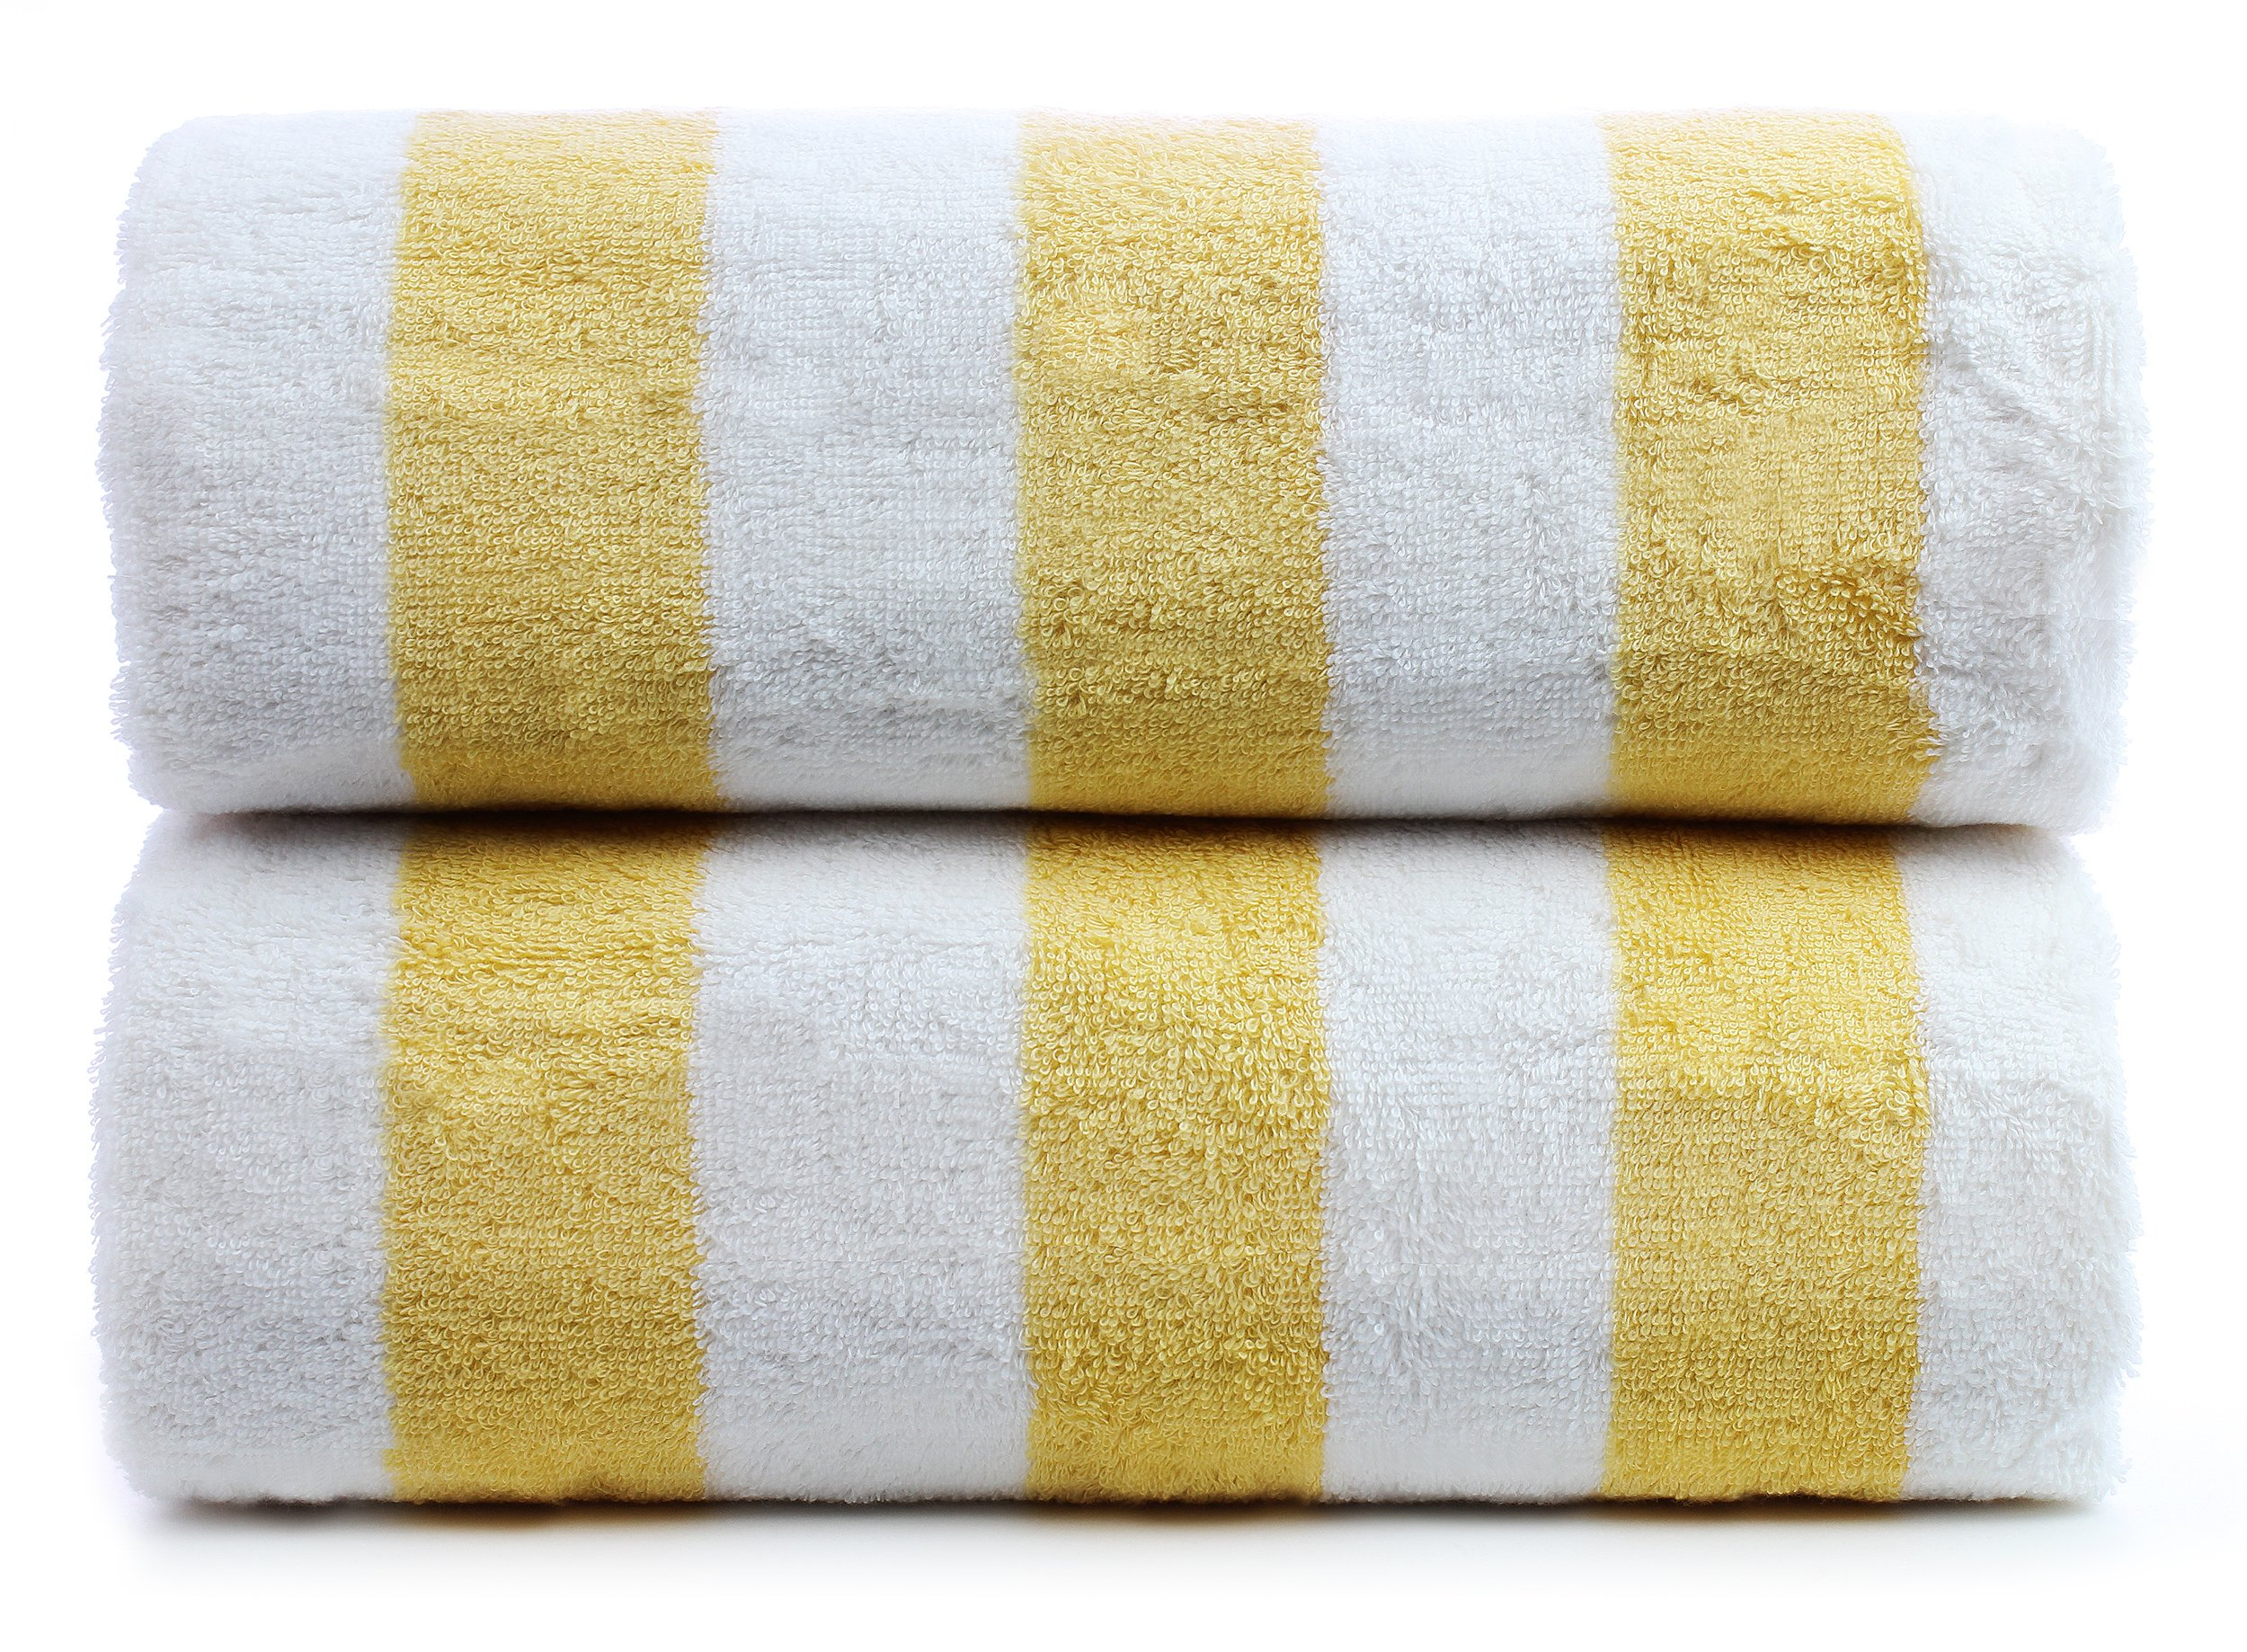 Premium Quality Large Hotel and Spa 2-Piece Beach Towels, Pool Towels with Cabana Stripe, Eco-friendly, Turkish Cotton (Yellow, 30x60 inches)